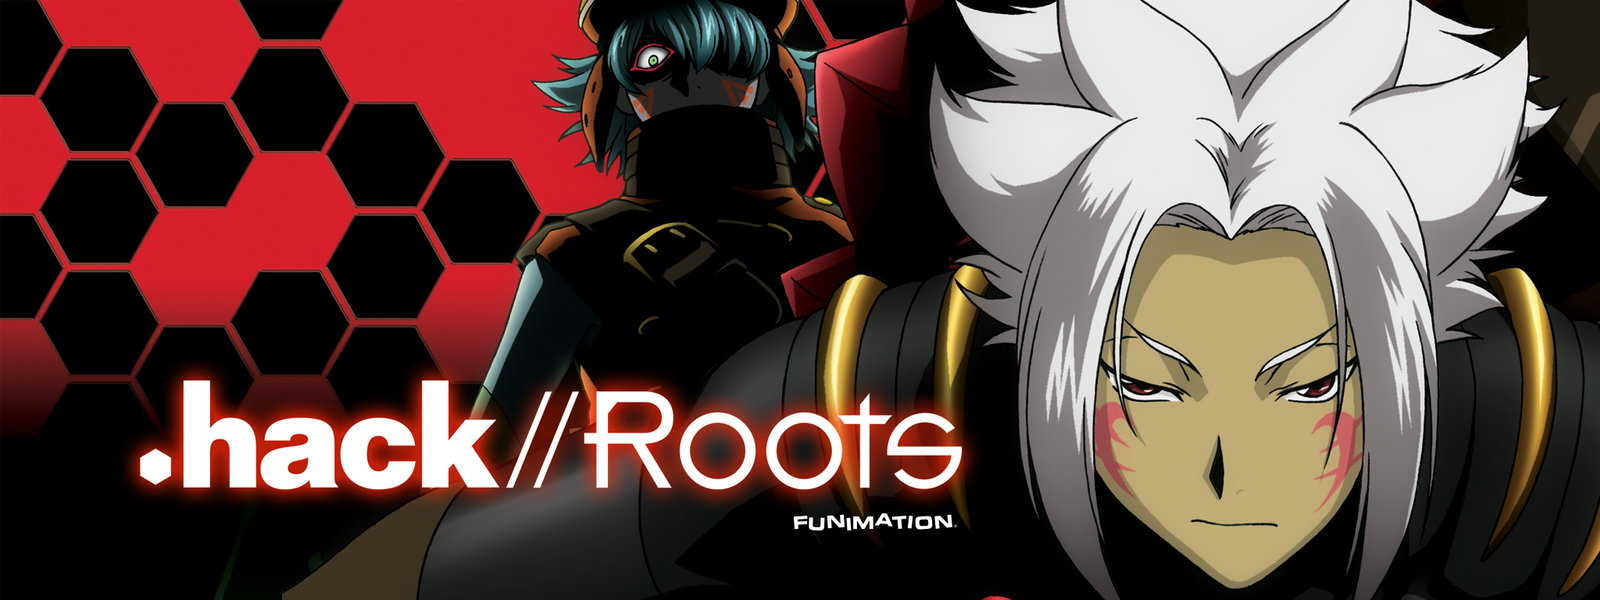 .hack//Roots cyberpunk anime